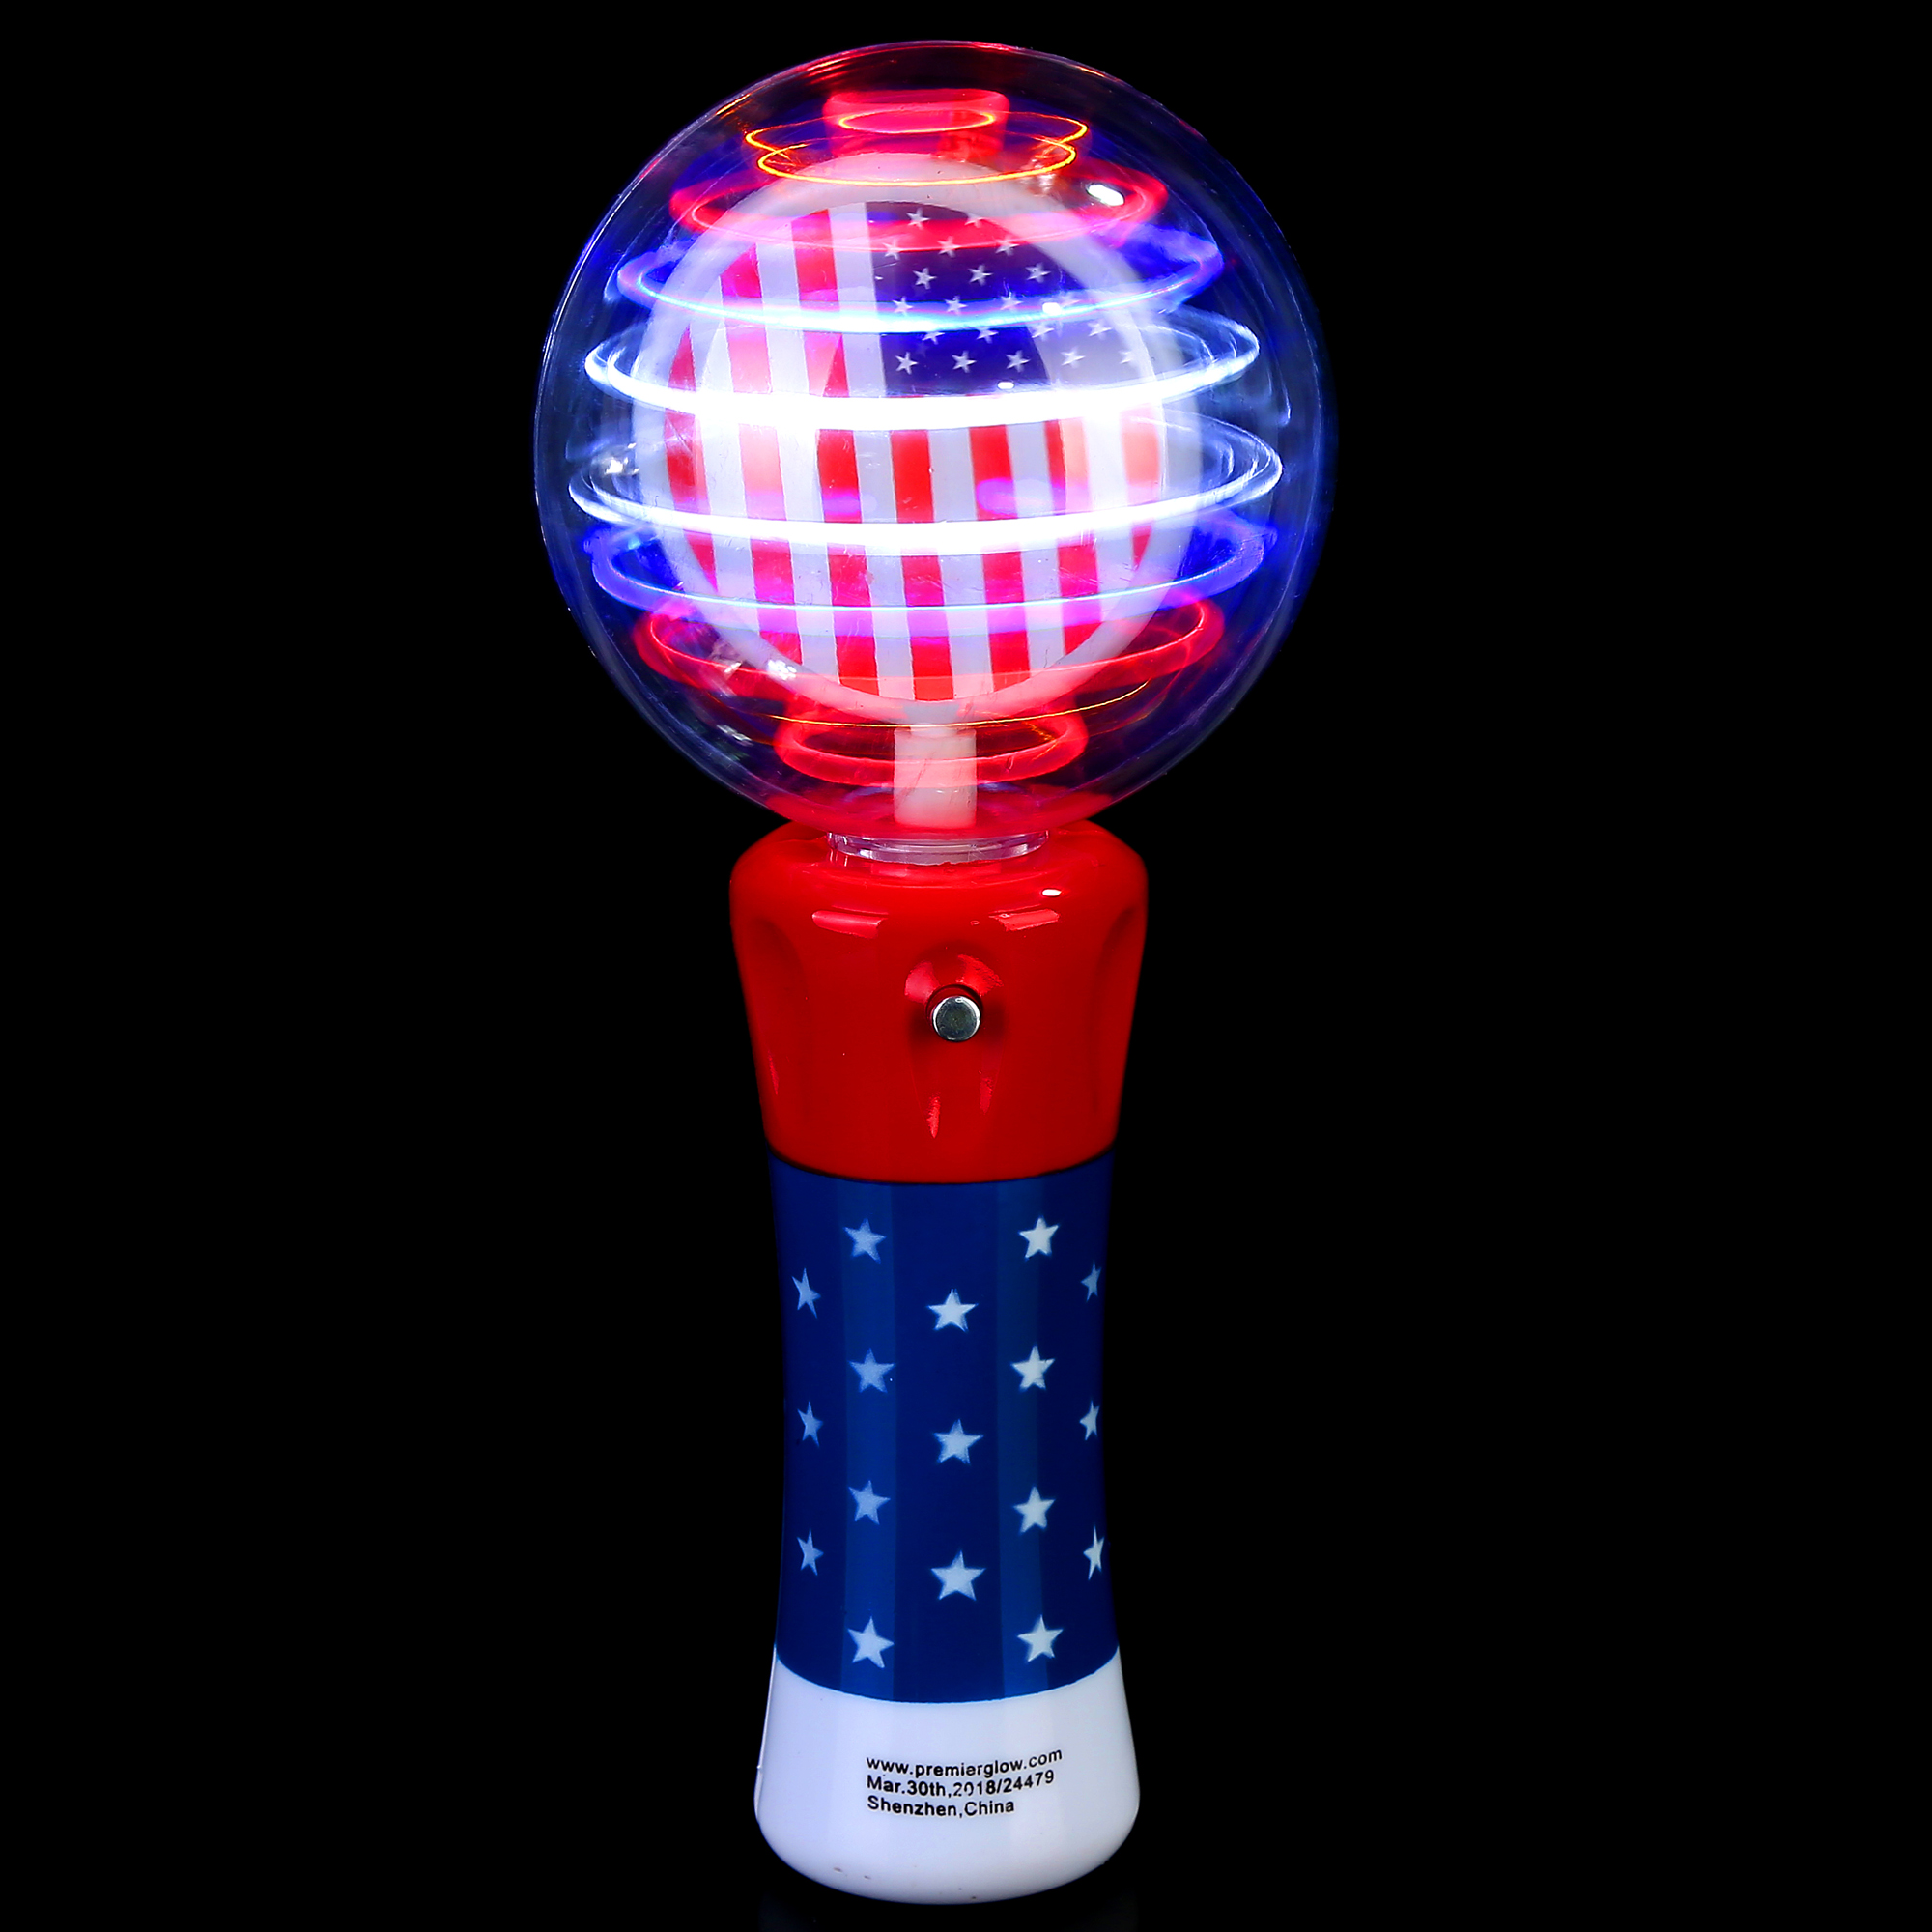 Fun Central O561 LED Light Up Spinner Wand - Red-White-Blue